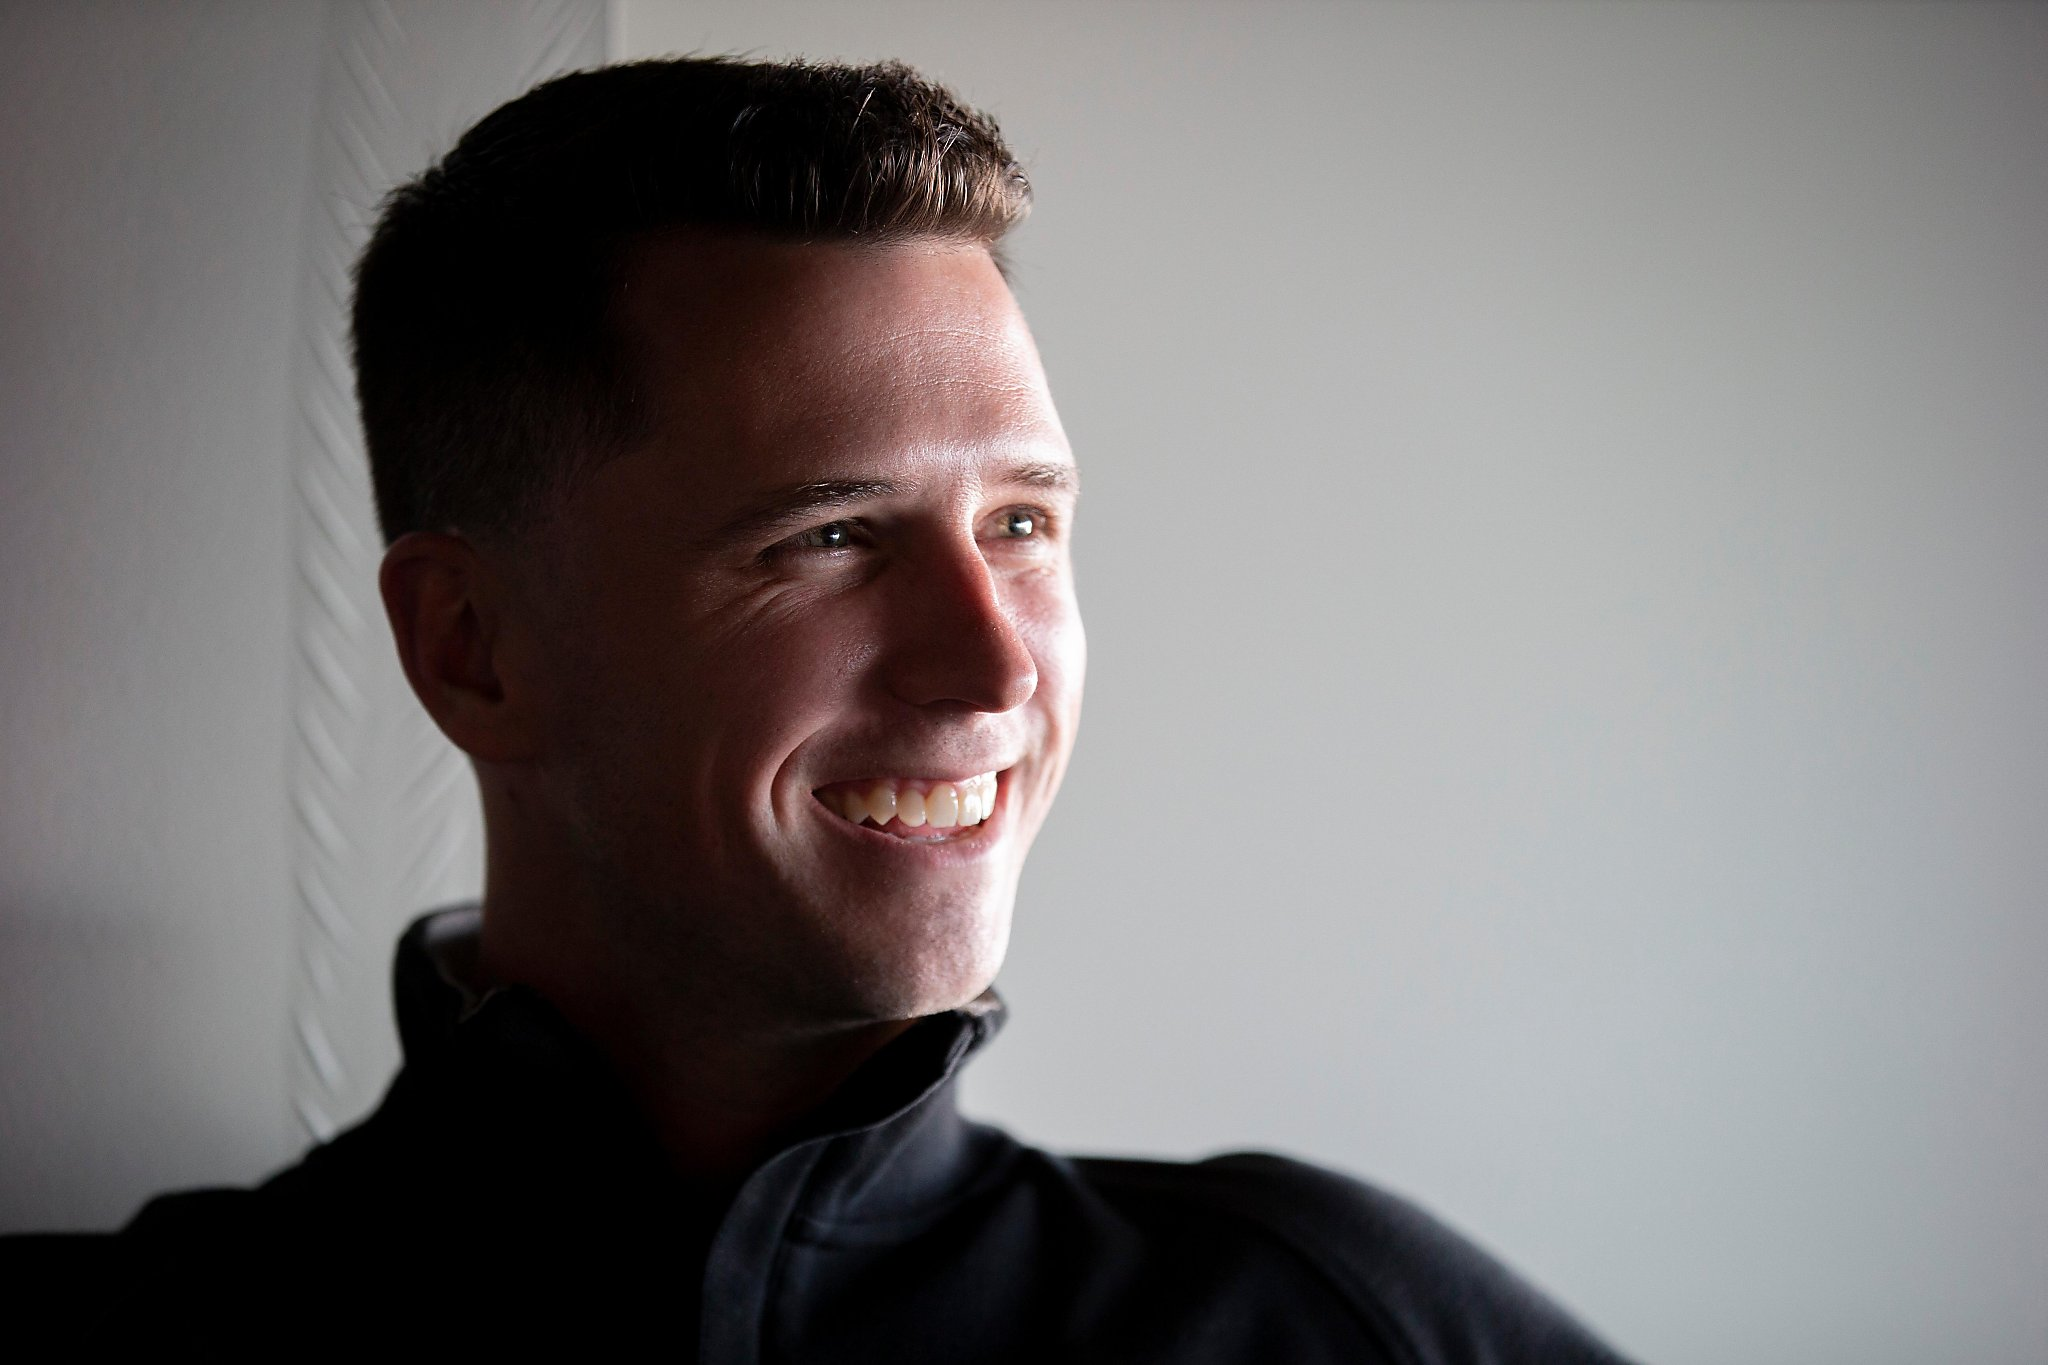 Giants' Buster Posey suggests using microphones to give signs to pitchers